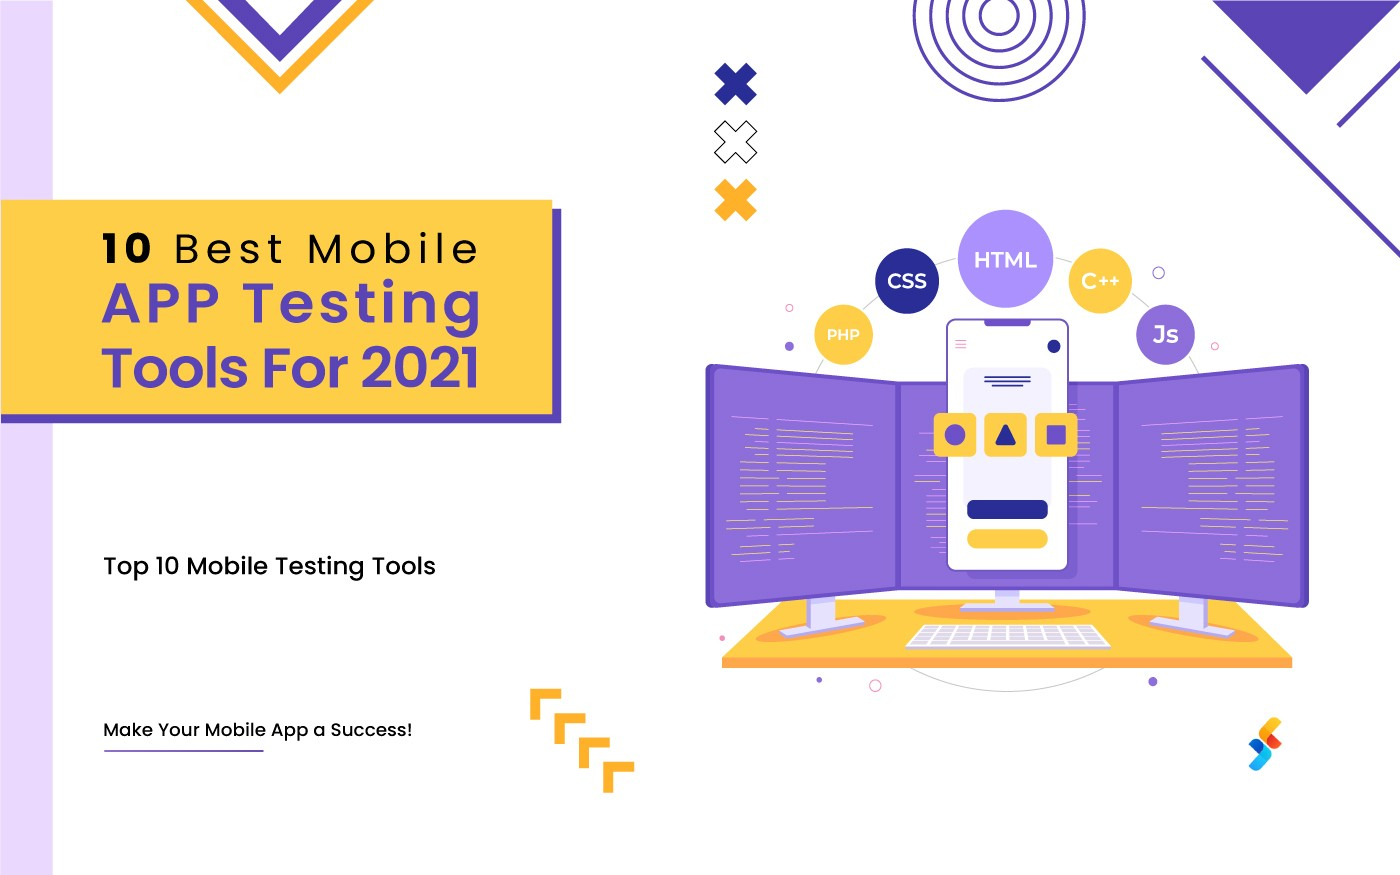 10-Best-Mobile-Application-Testing-Tools-For-2021